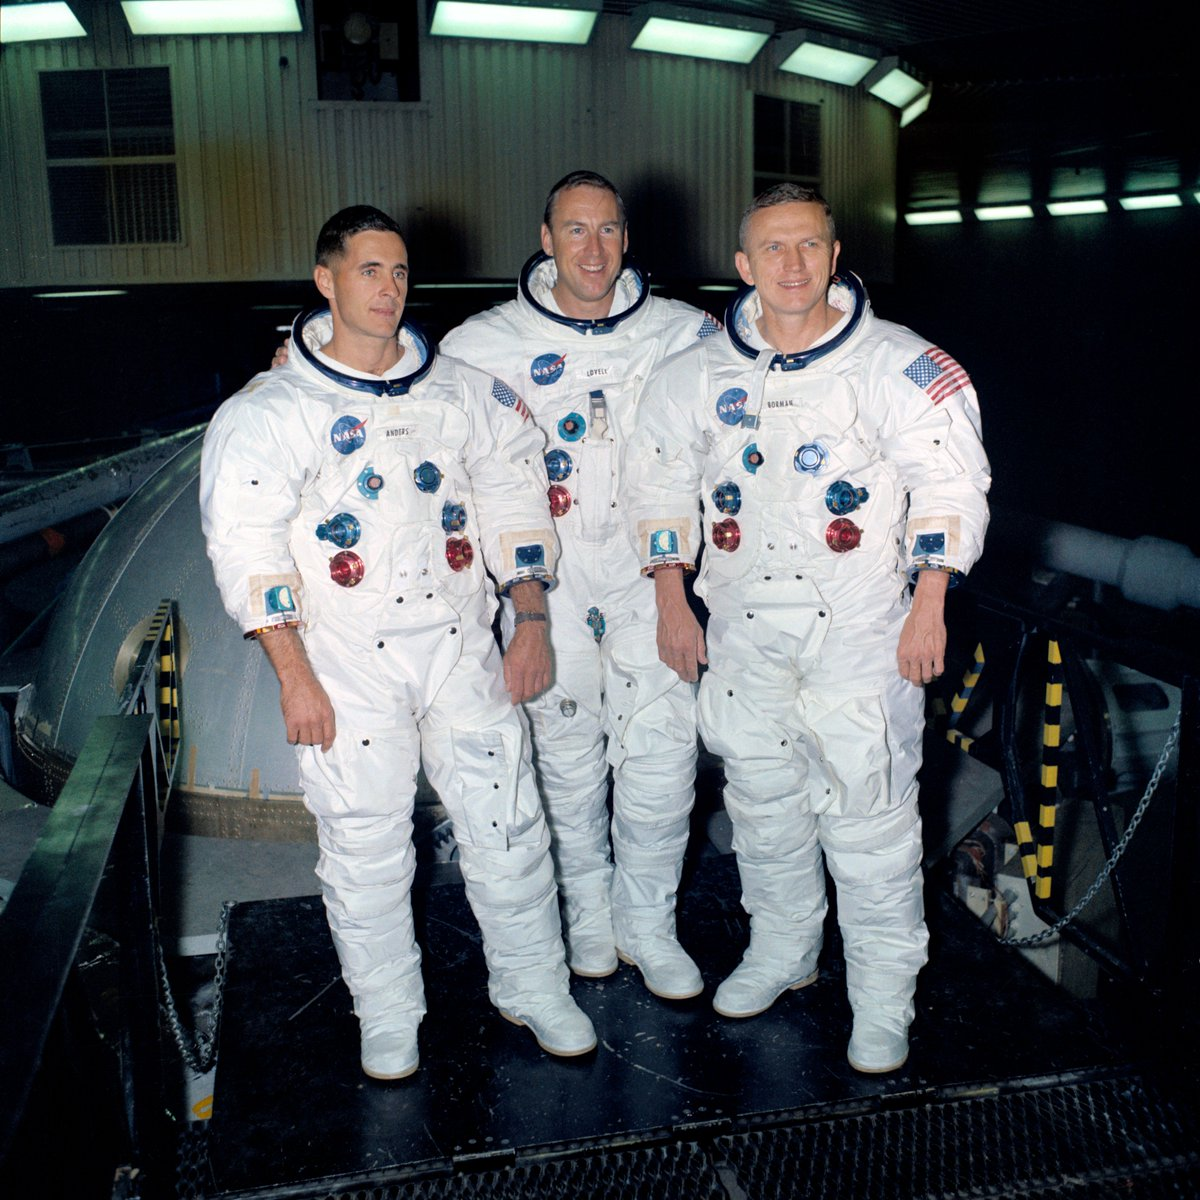 50 years ago, after extensive deliberation, NASA announced the decision to remove the Lunar Module from Apollo 8 in December 1968. Additionally, the Apollo 8 and 9 crew members were switched to reflect each crew's expertise and training for the vehicles.  https://www. nasa.gov/feature/50-yea rs-ago-nasa-announces-changes-to-apollo-8 &nbsp; … <br>http://pic.twitter.com/lTEX3giL5R